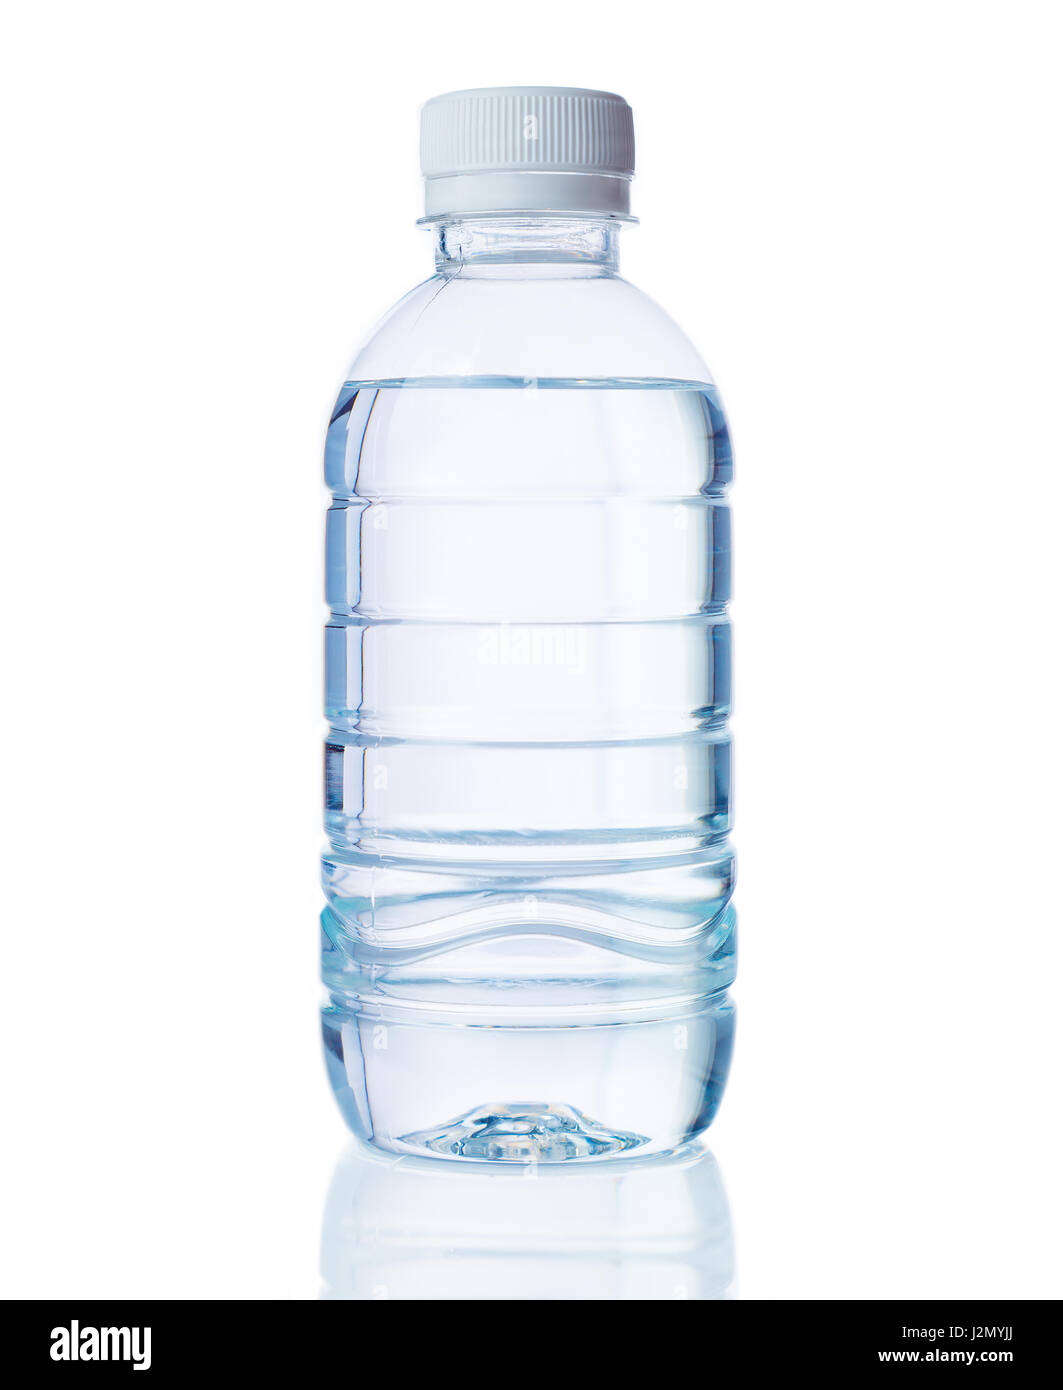 plastic bottle of clear drinking water on isolated white background